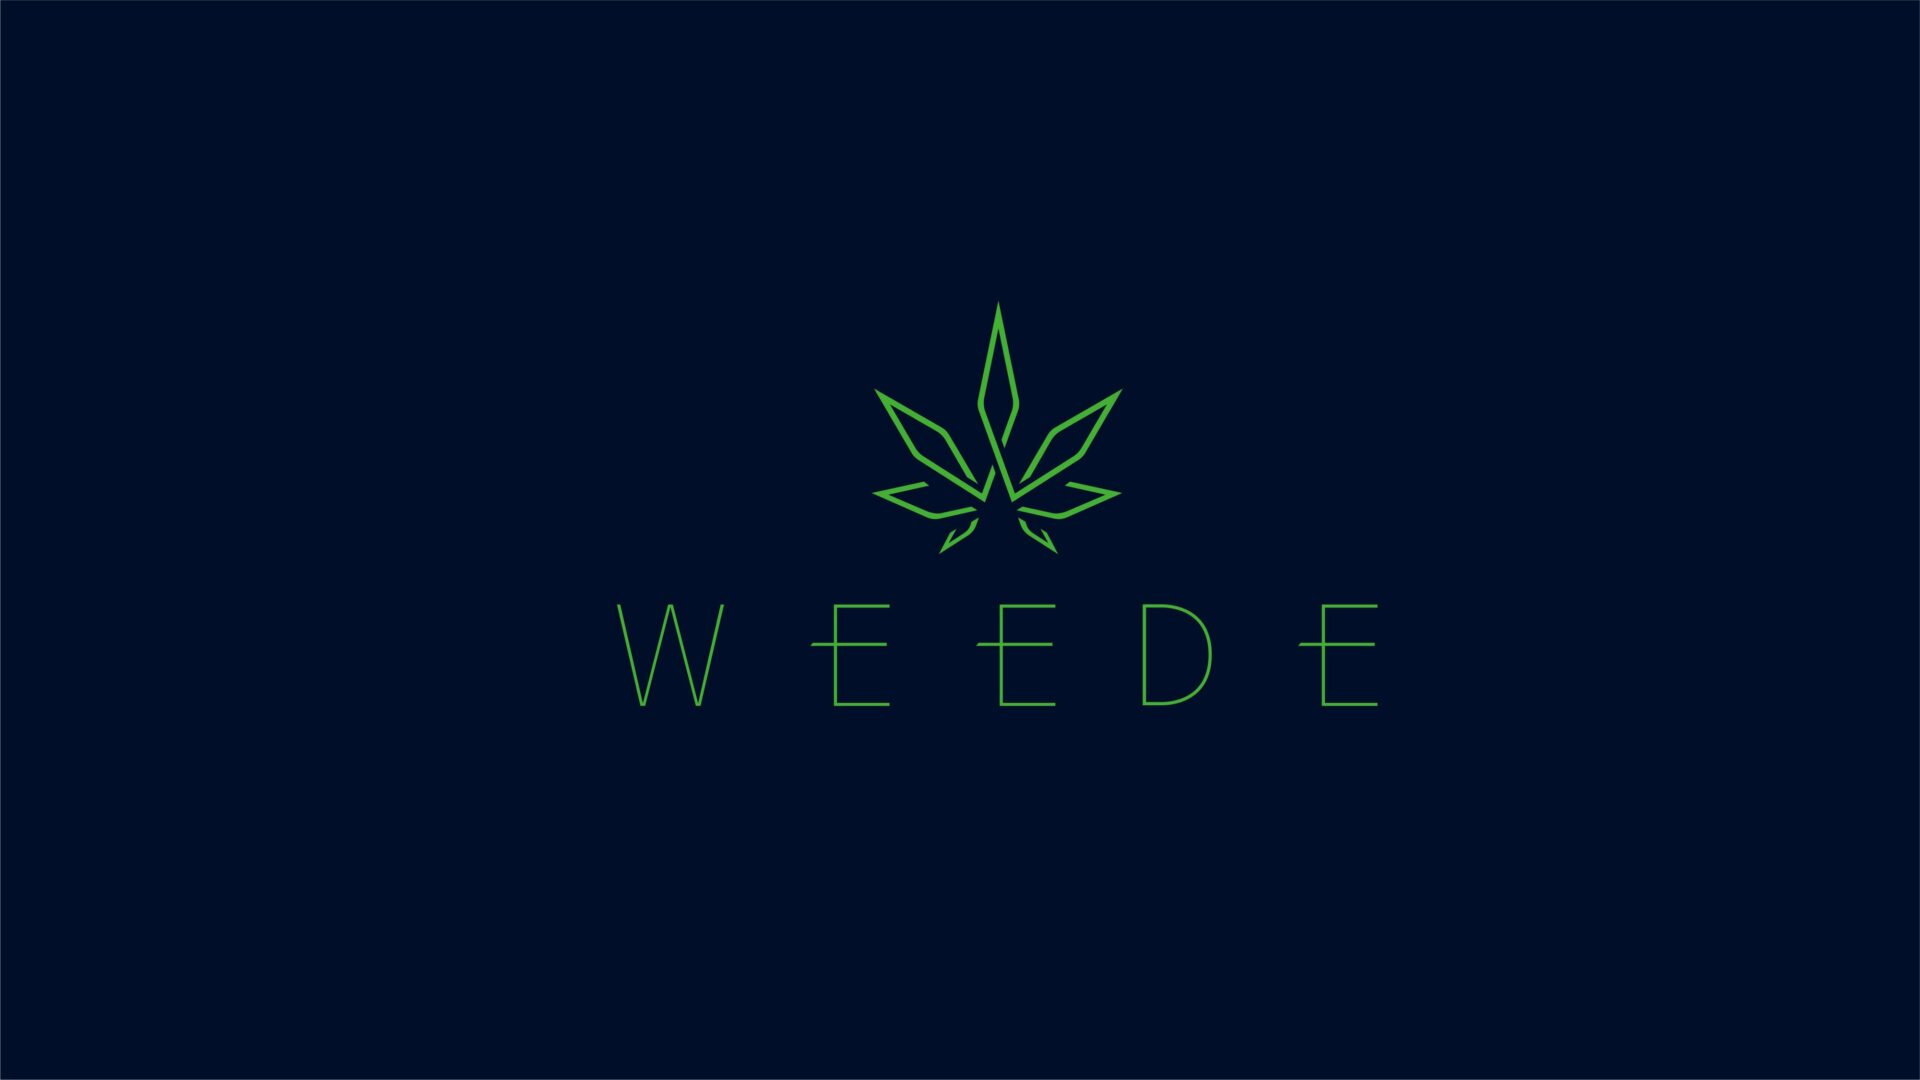 「WEEDE」のサムネイル画像